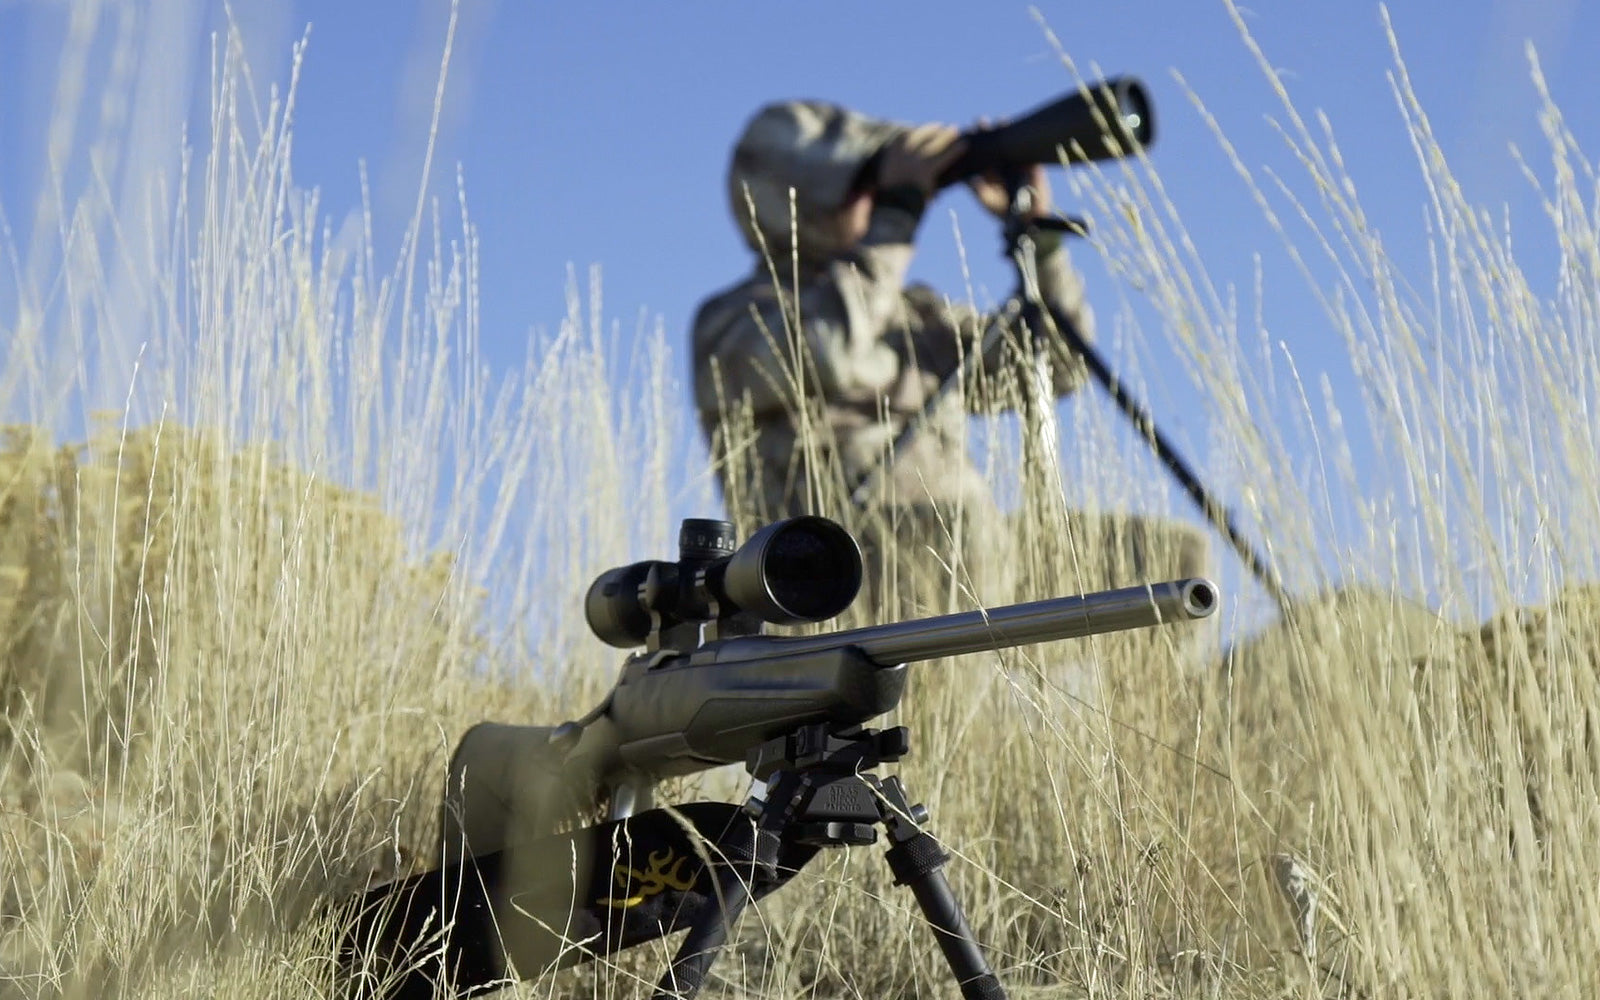 Hunting Tripod - How to choose based on your hunting style